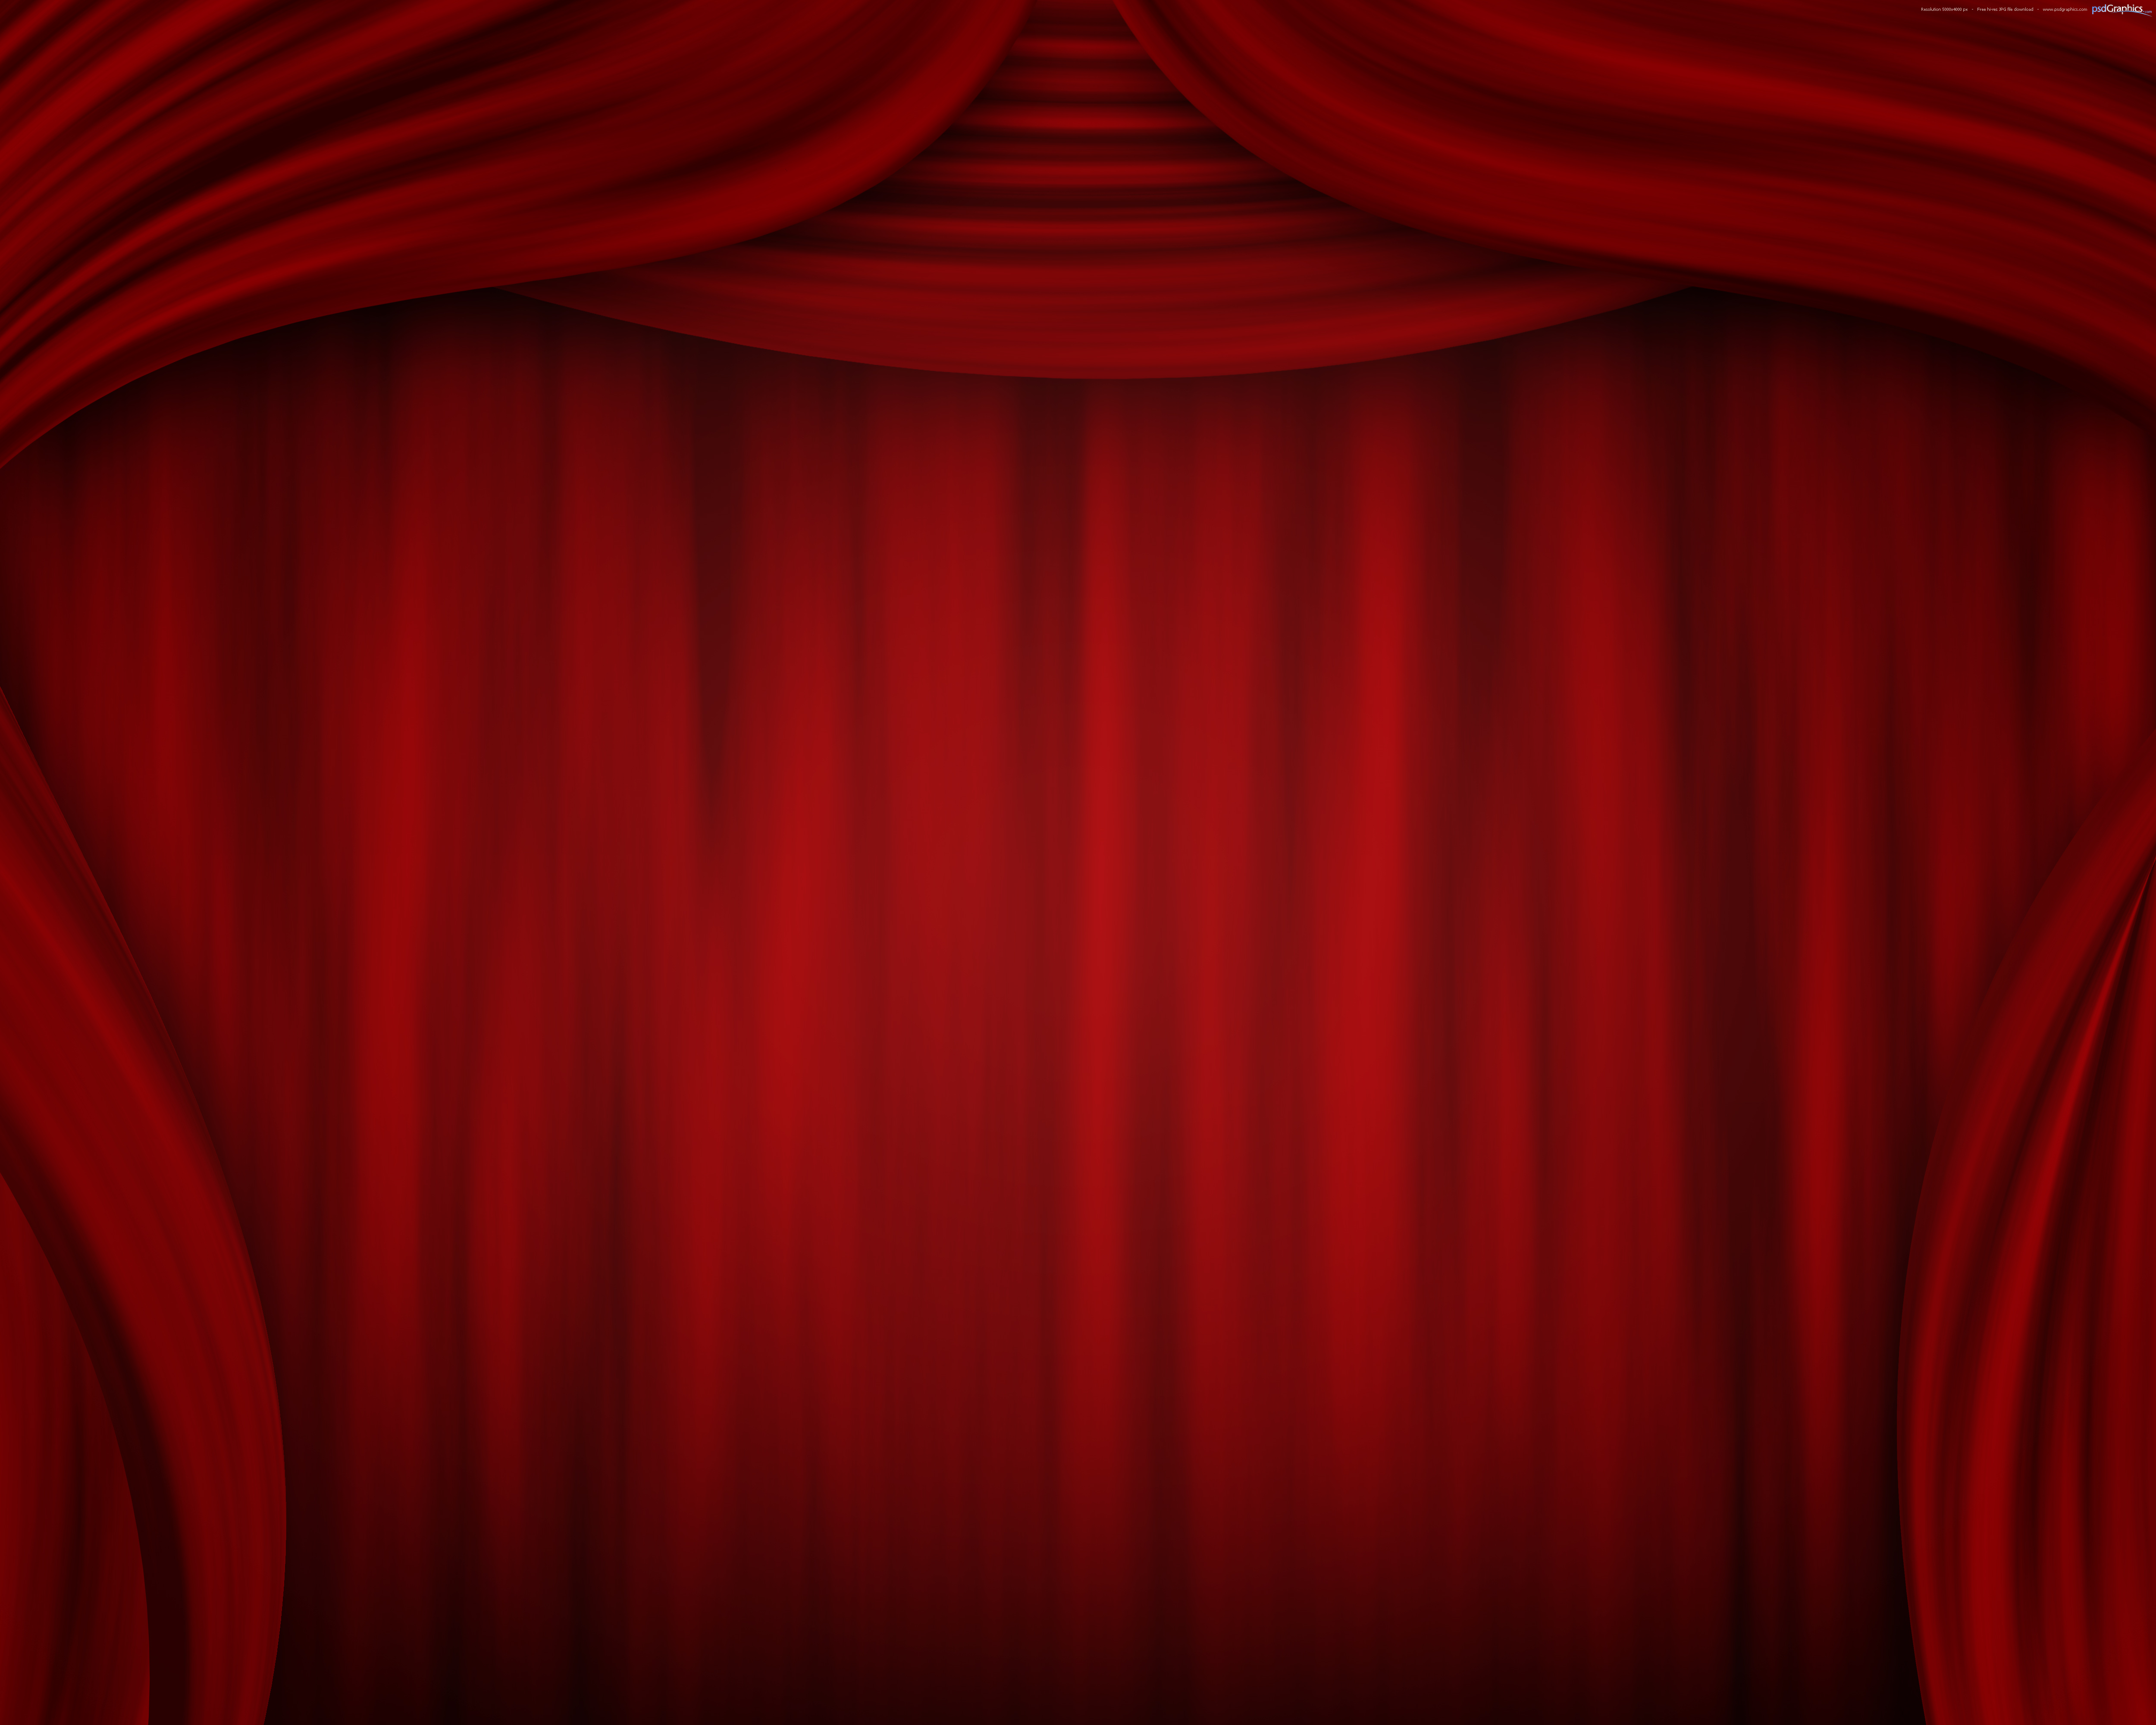 Theater Curtains Backgrounds Wallpaper Cave